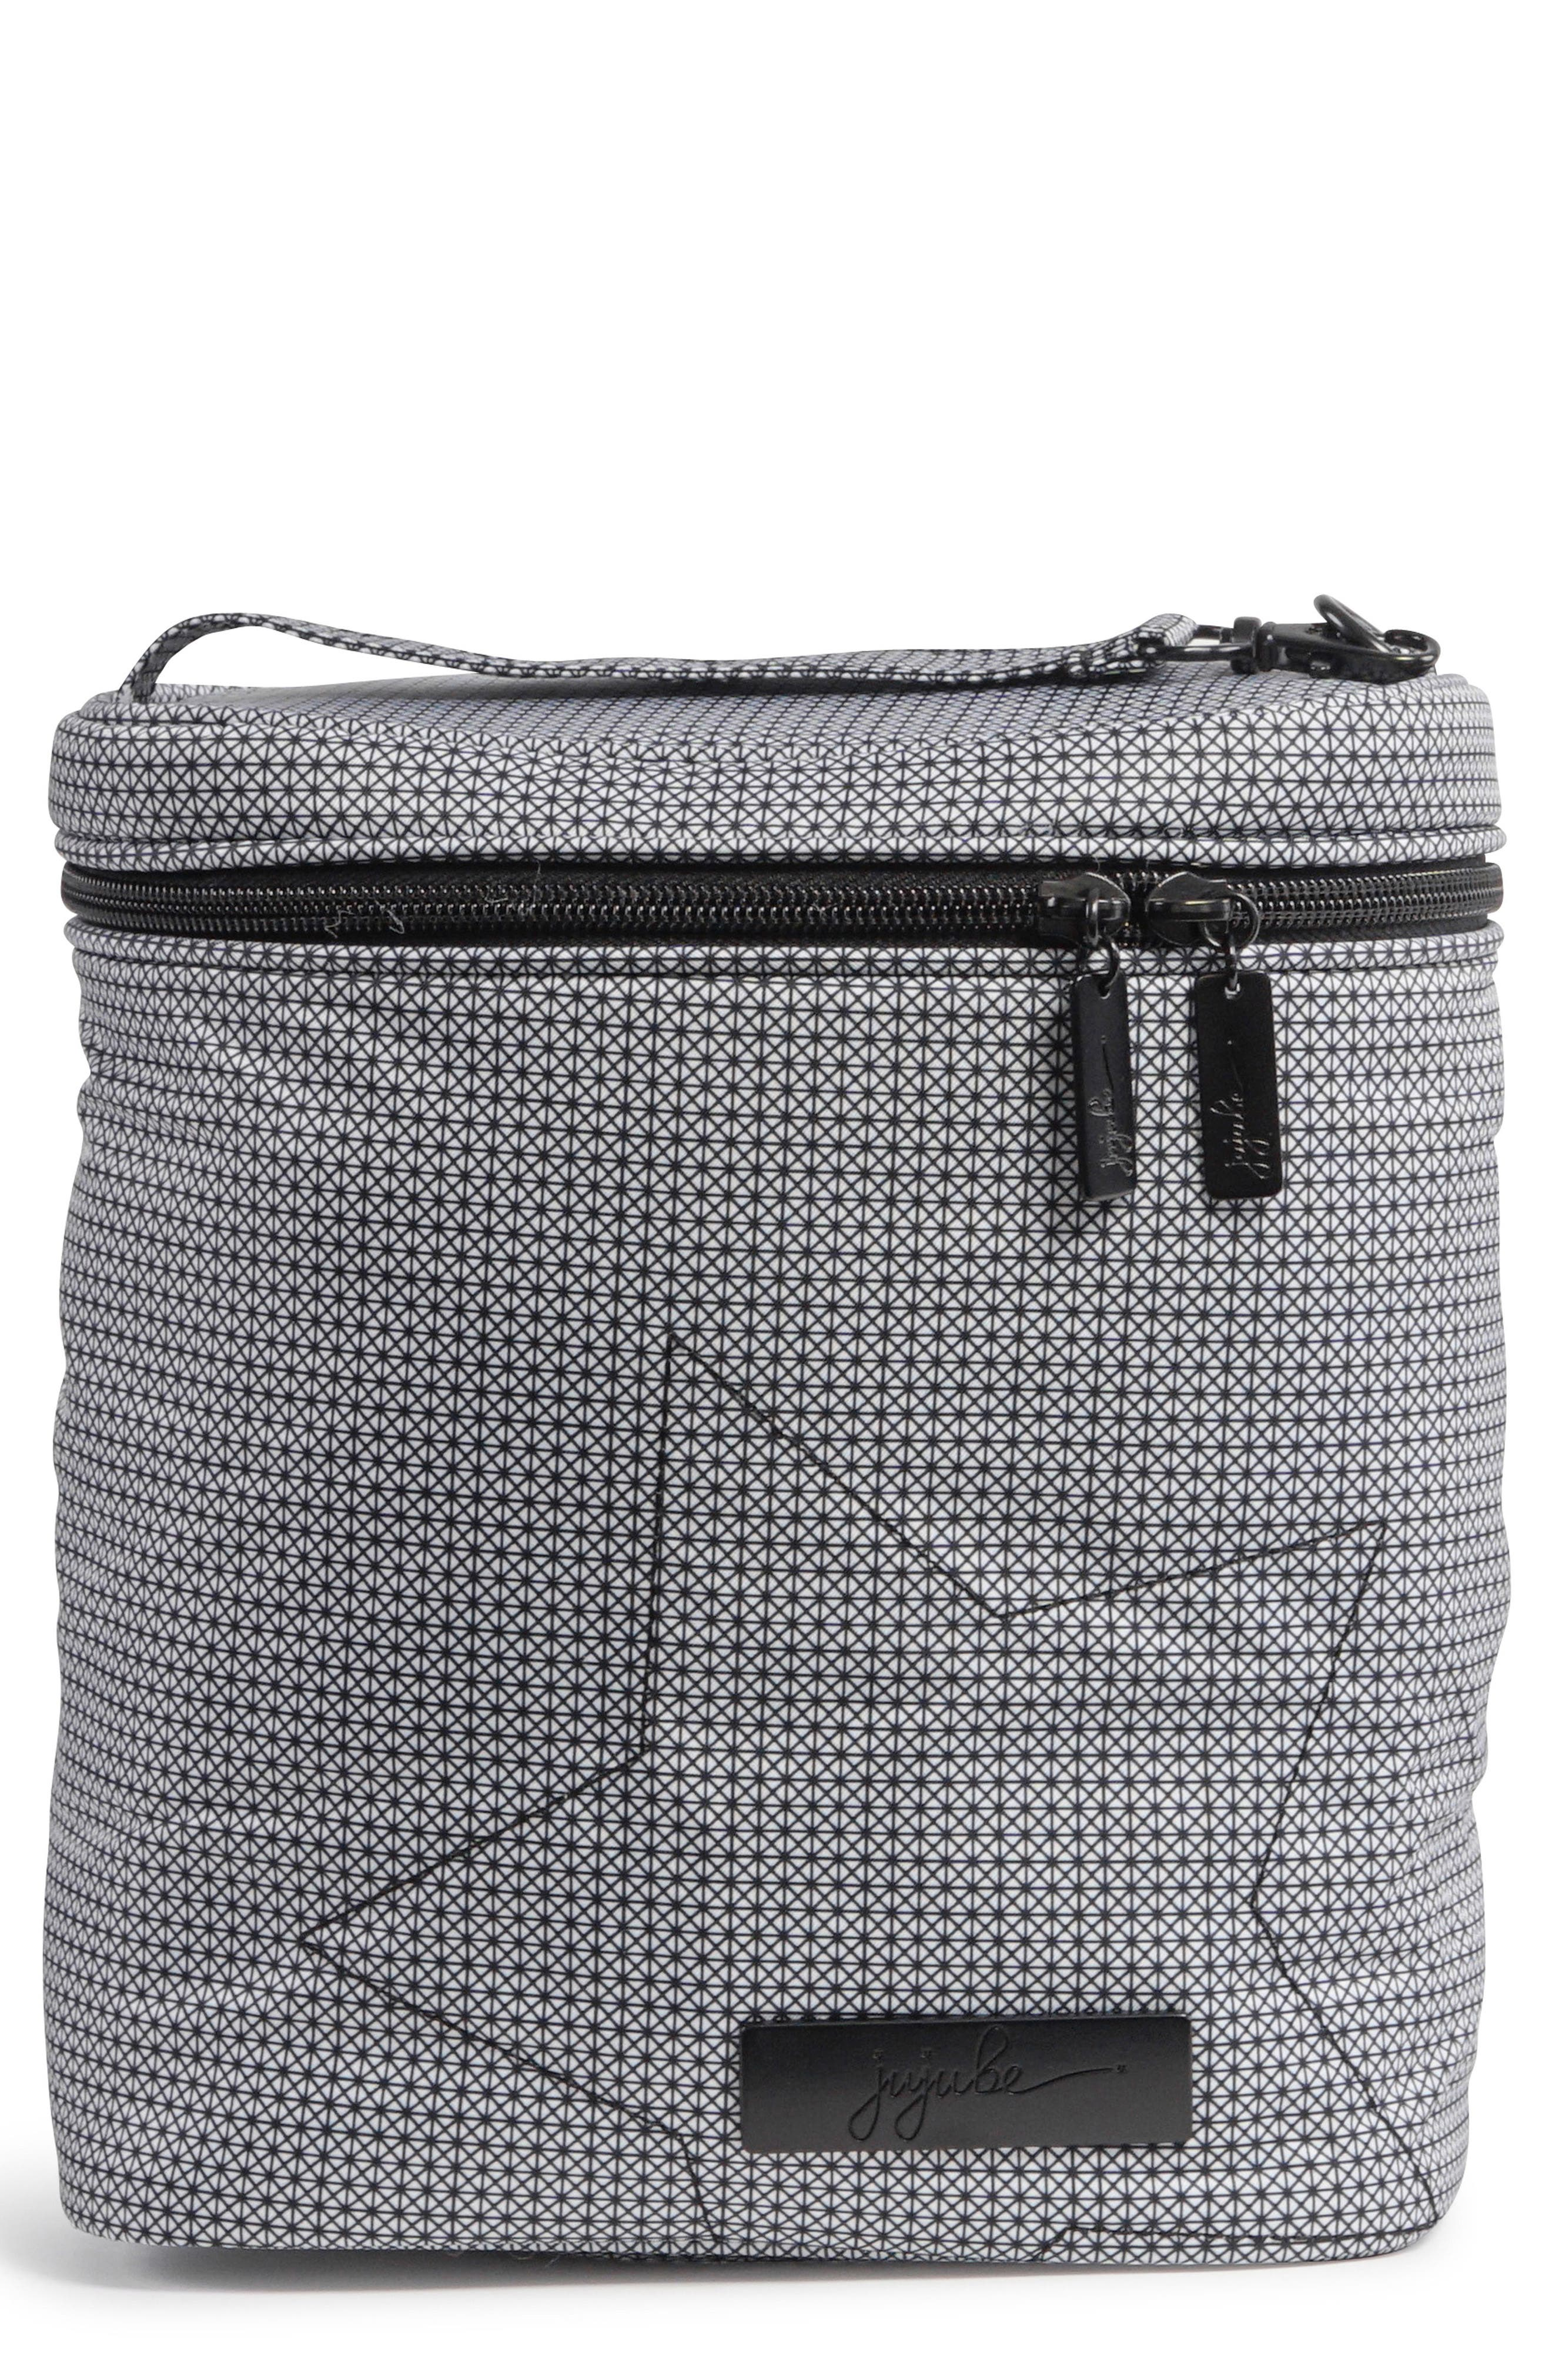 'Fuel Cell - Onyx Collection' Lunch Bag,                             Main thumbnail 1, color,                             Black Matrix